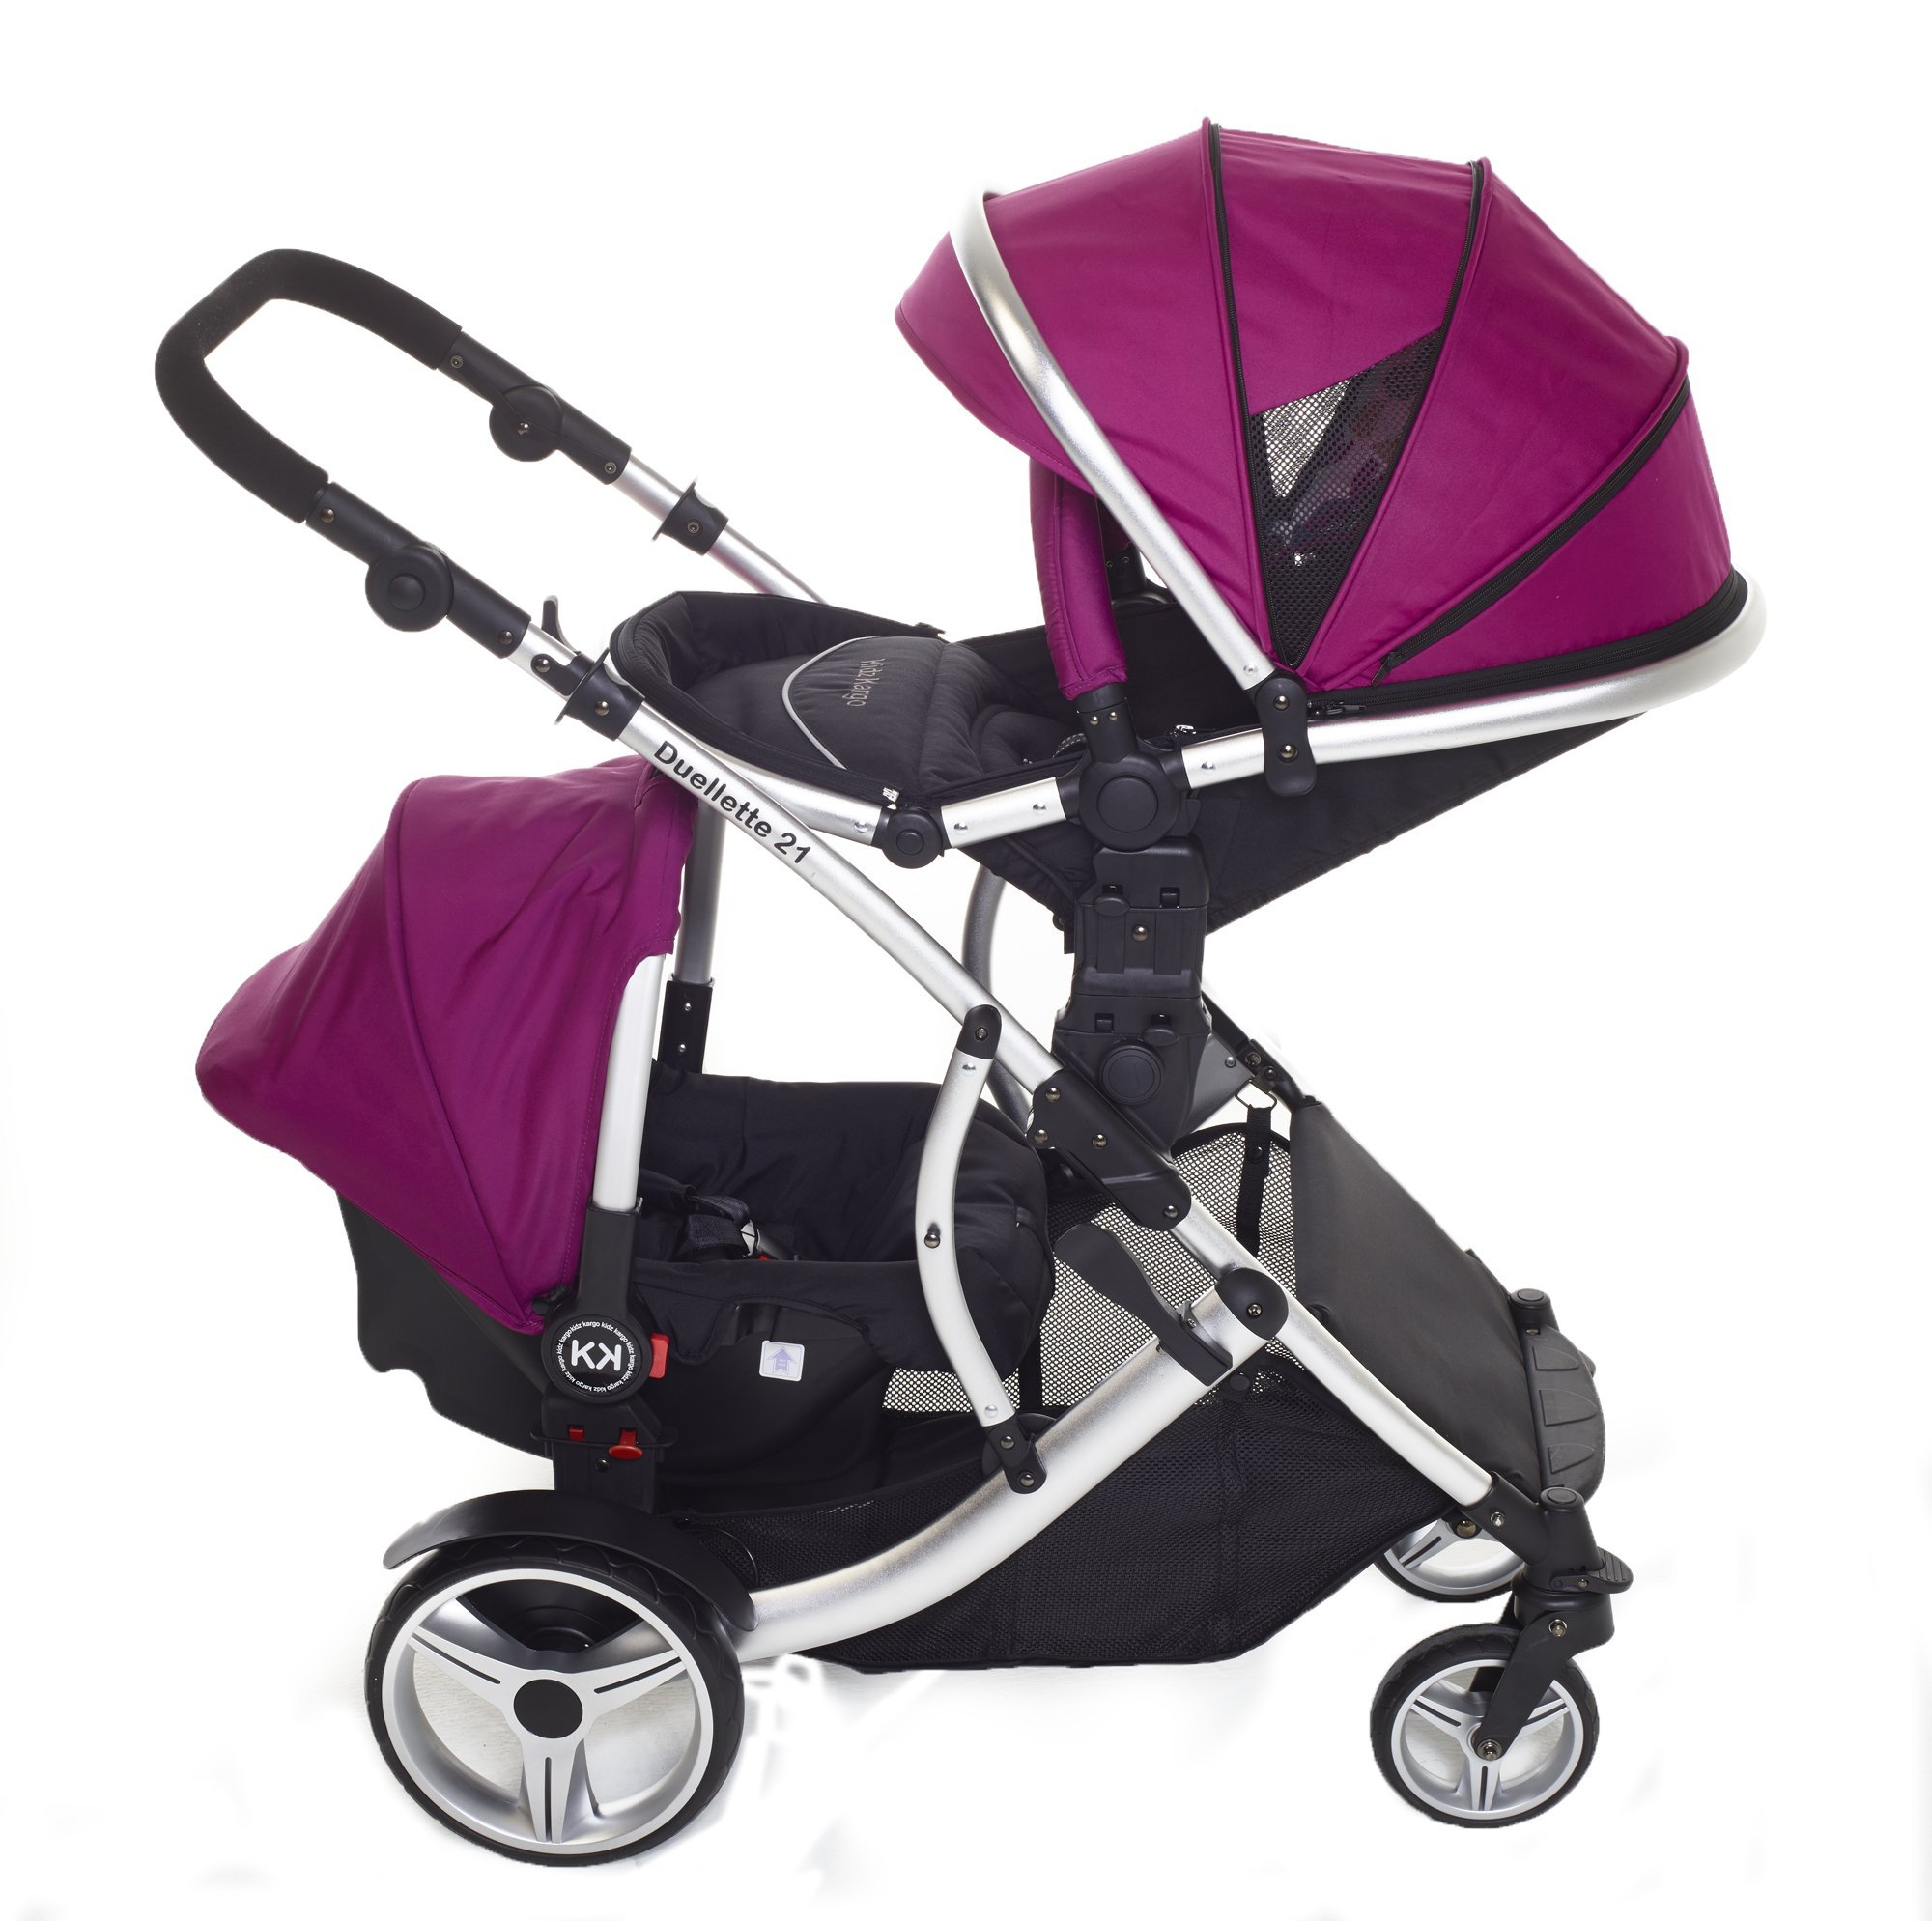 Kids Kargo Double Twin Tandem Pushchair. Duellette BS Suitable for Twins from 6 months. Stroller by Kids Kargo (Dooglebug raspberry) Kids Kargo Demo video please see link http://youtu.be/Ngj0yD3TMSM Various seat positions. Both seats can face mum (ideal for twins) Suitability Twins (Newborn Twins if used with car seats). Accommodates 1 or 2 car seats 2